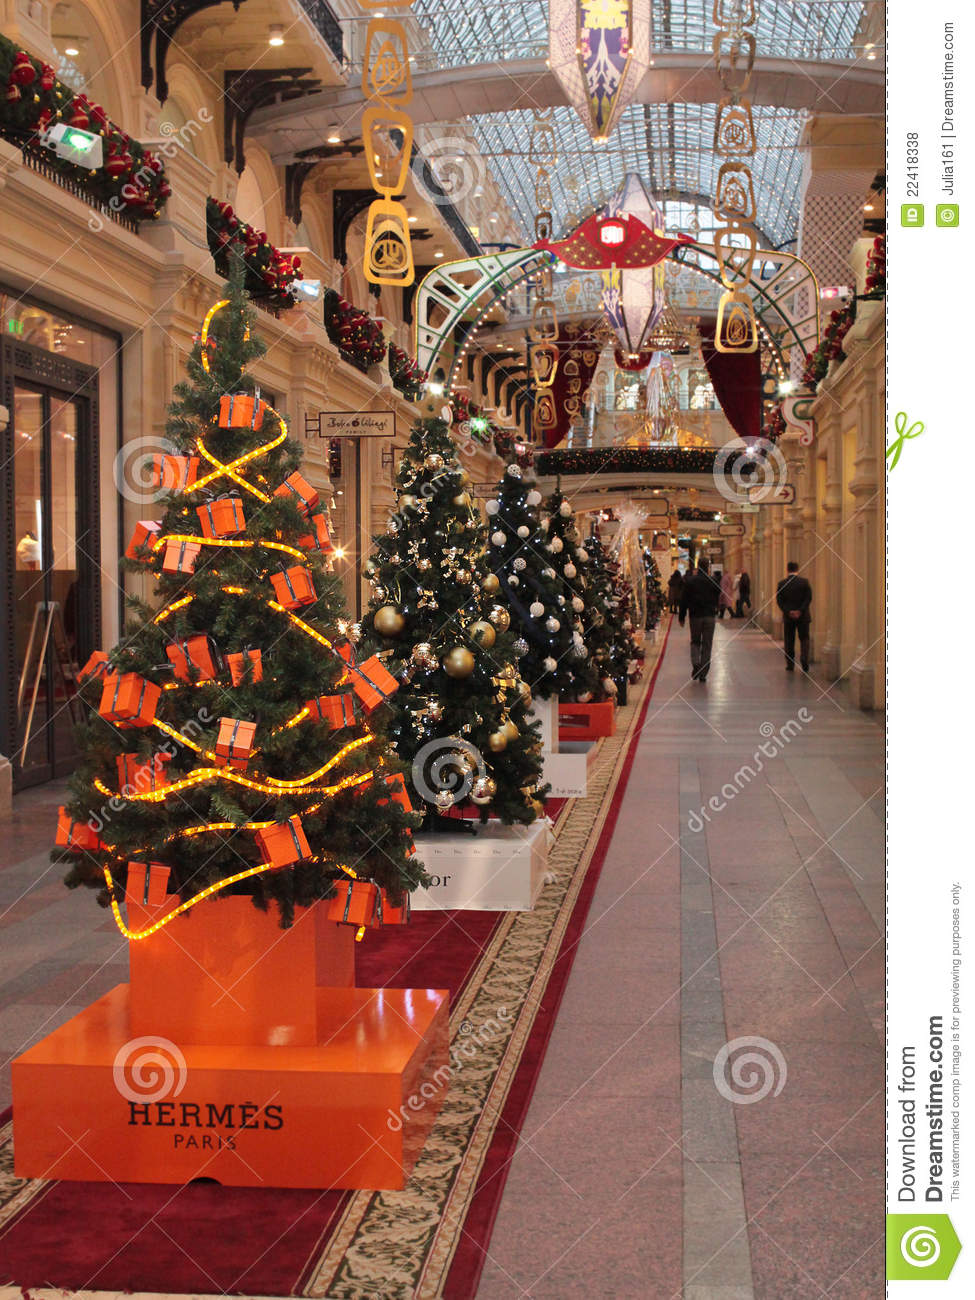 Hermes shop christmas decoration editorial stock photo image 22418338 for Photo decoration